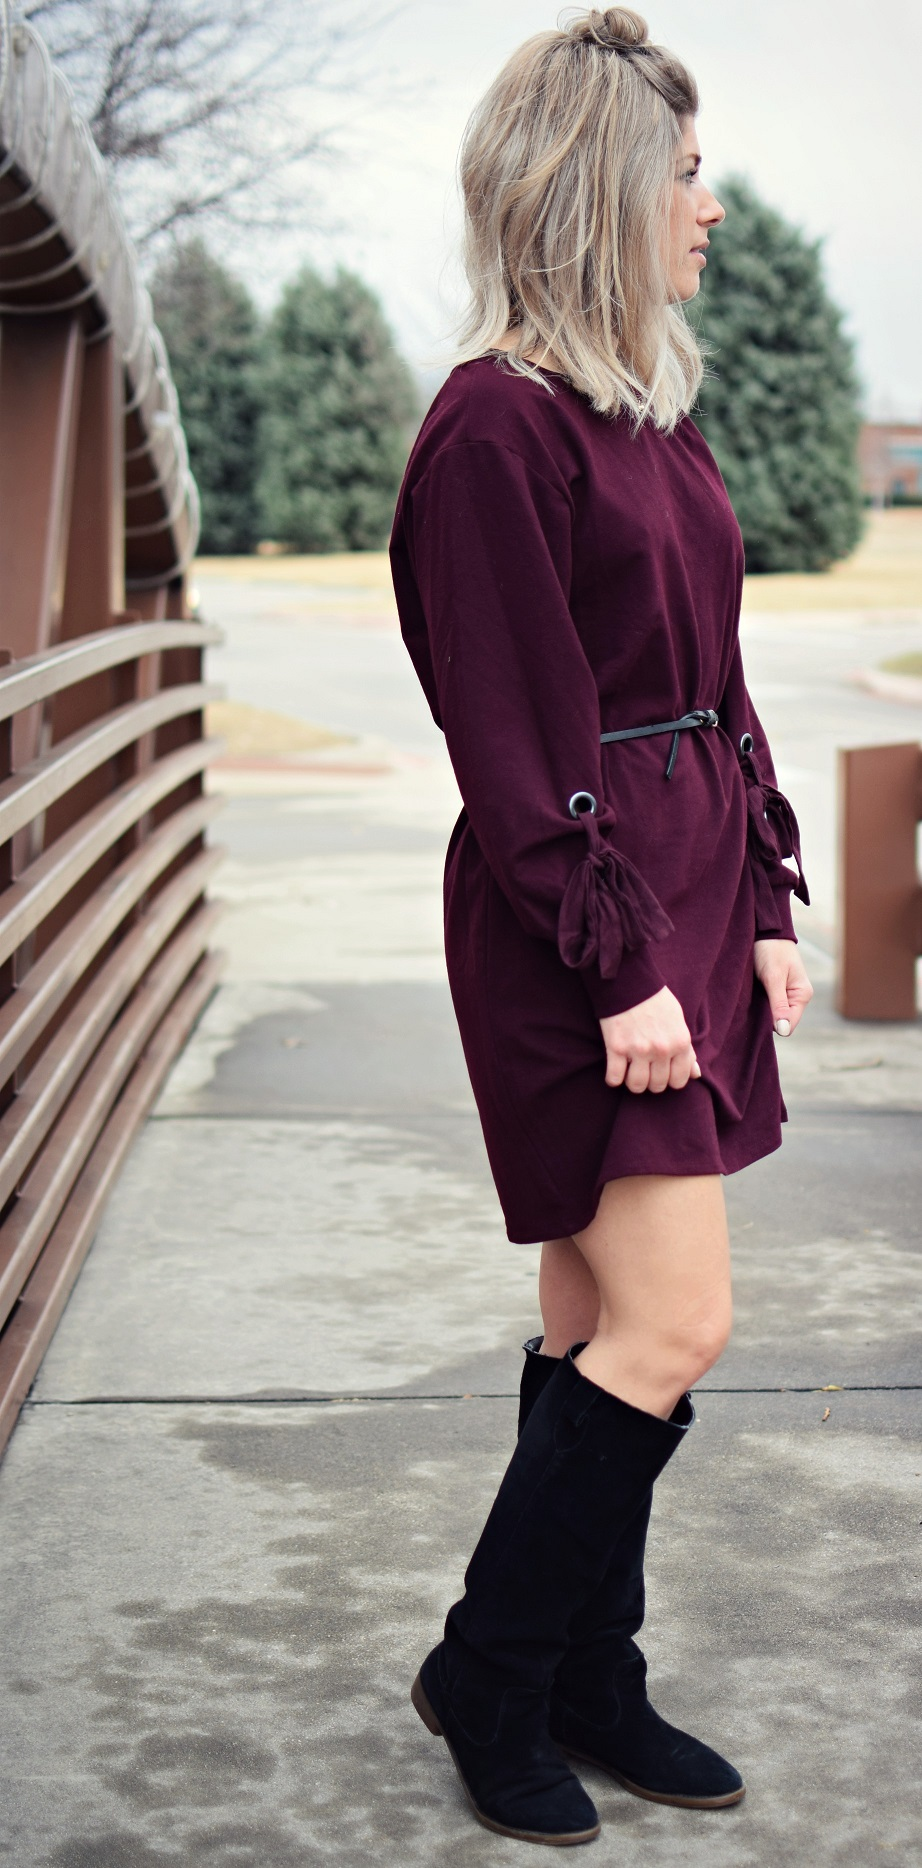 vince camuto maroon dress and top knot